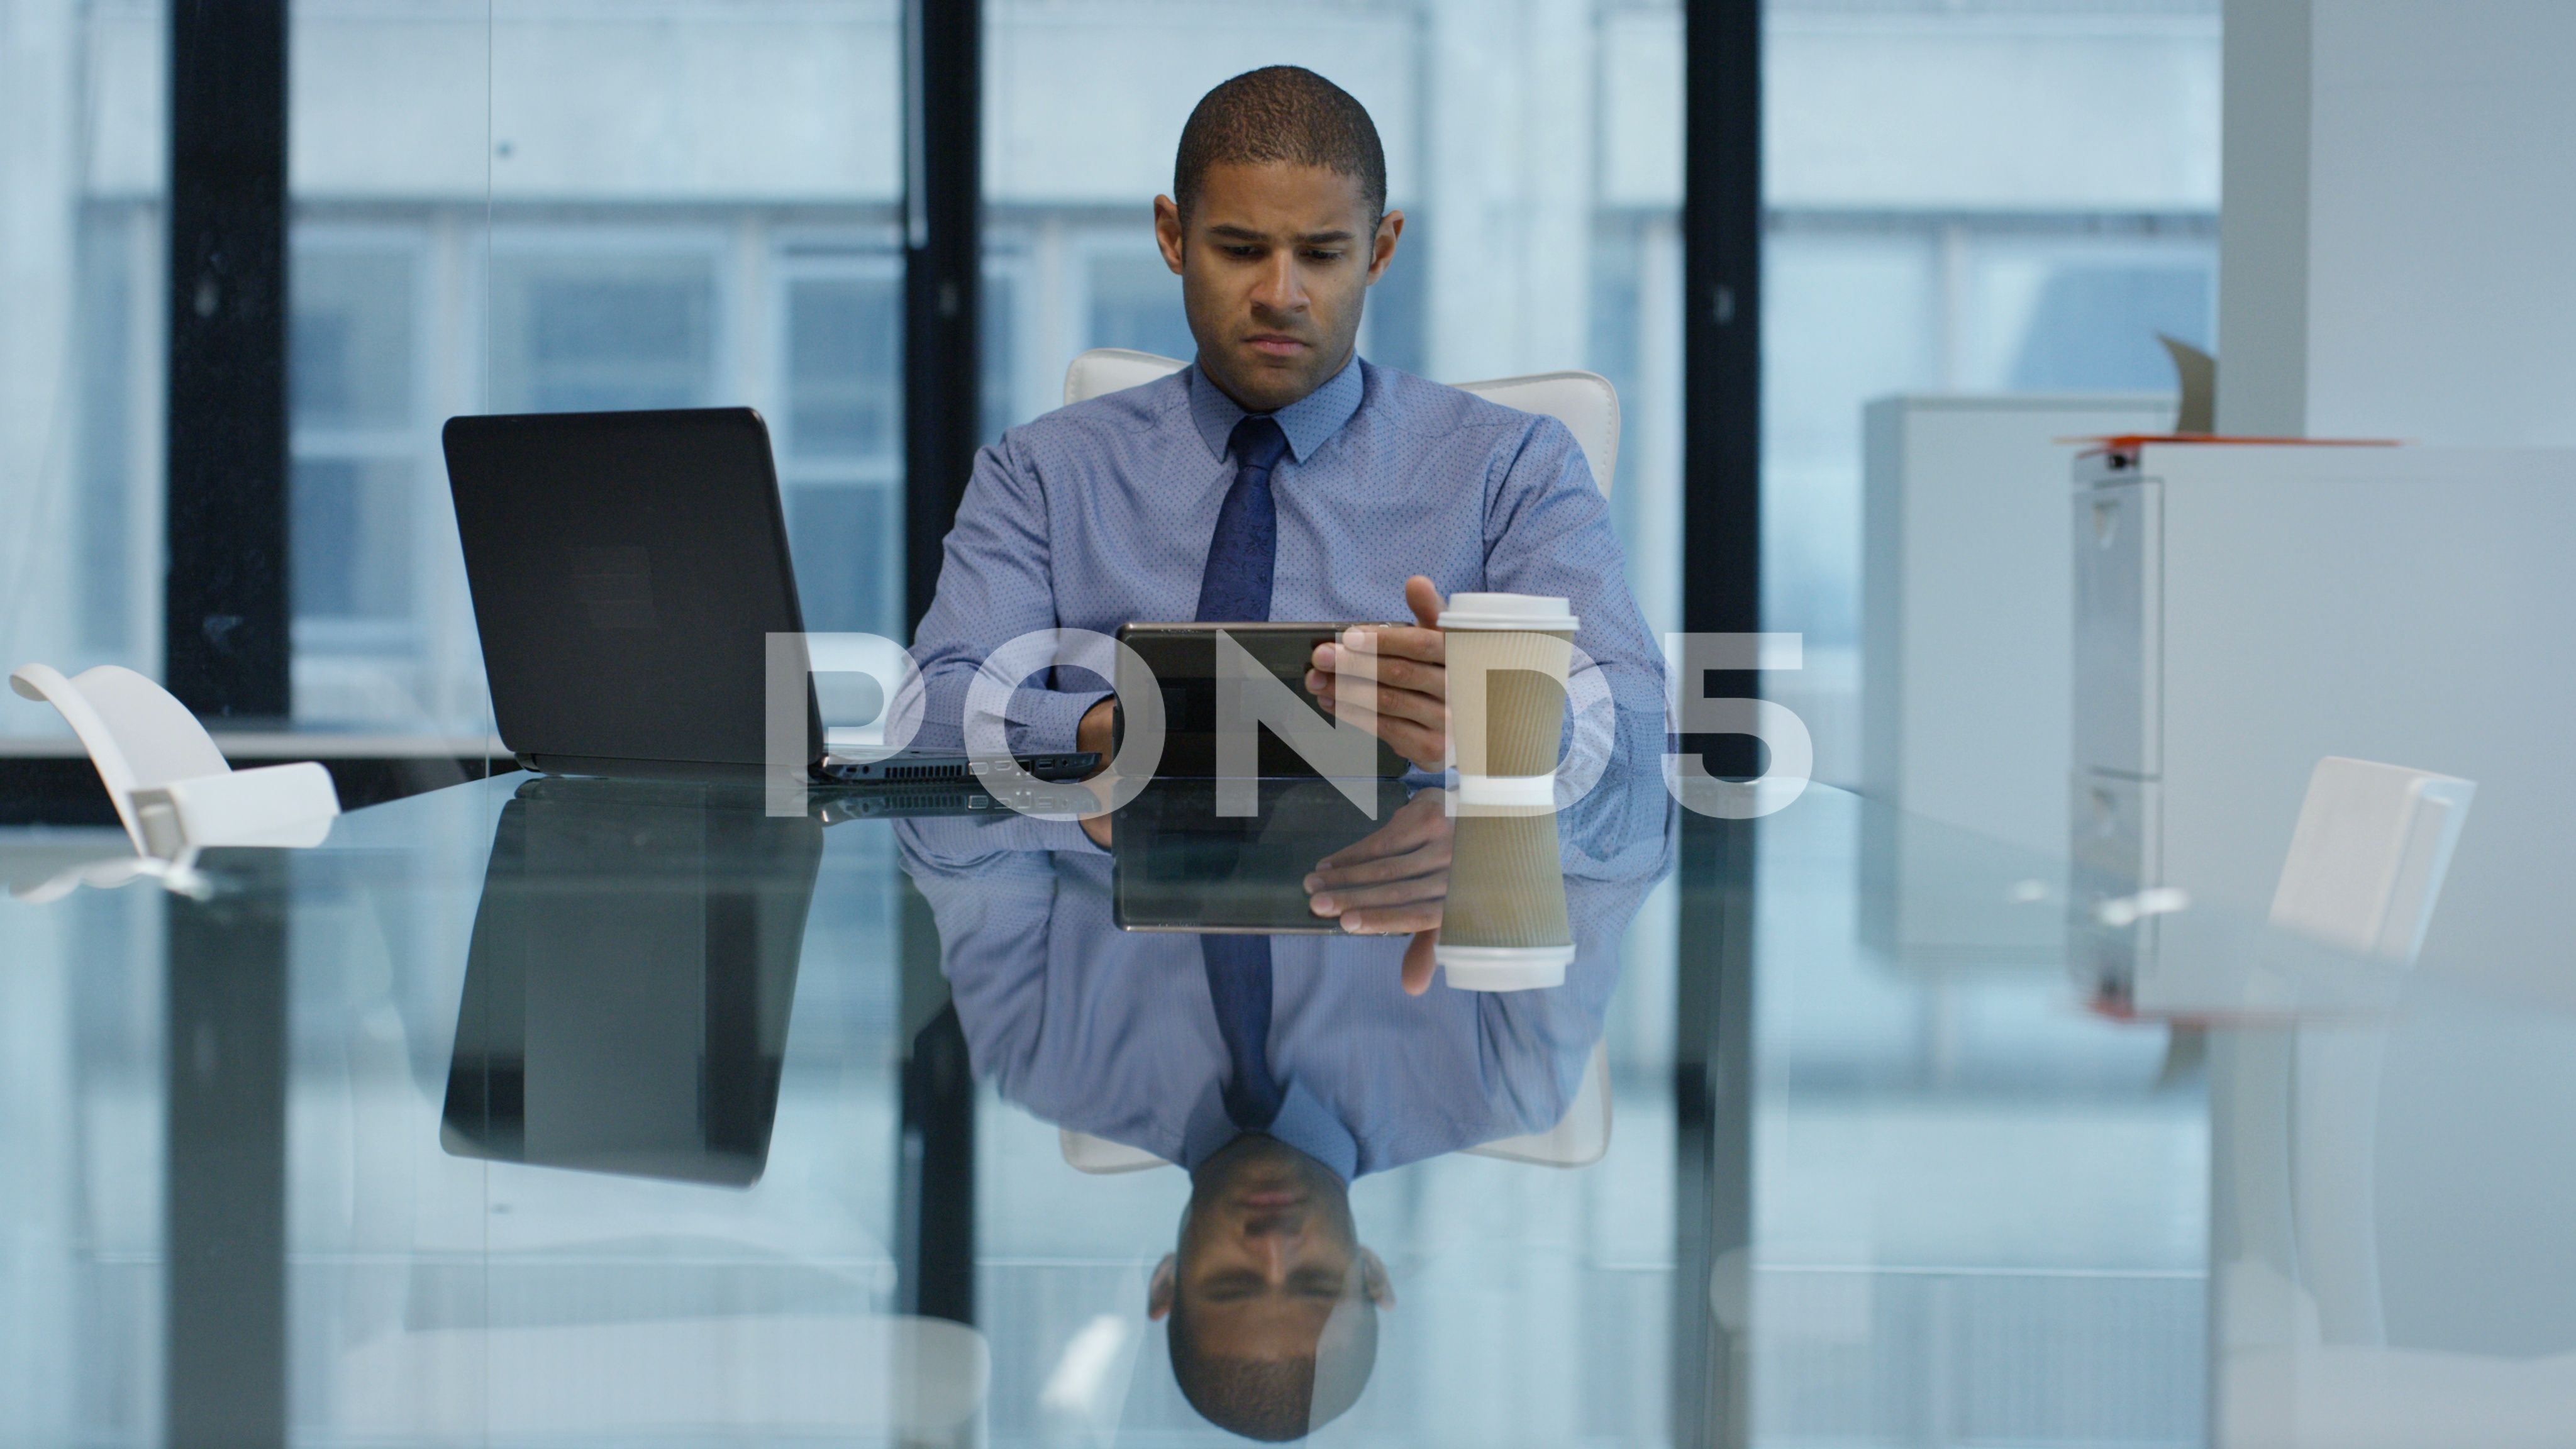 4k Business Man With Images Business Man Man Business